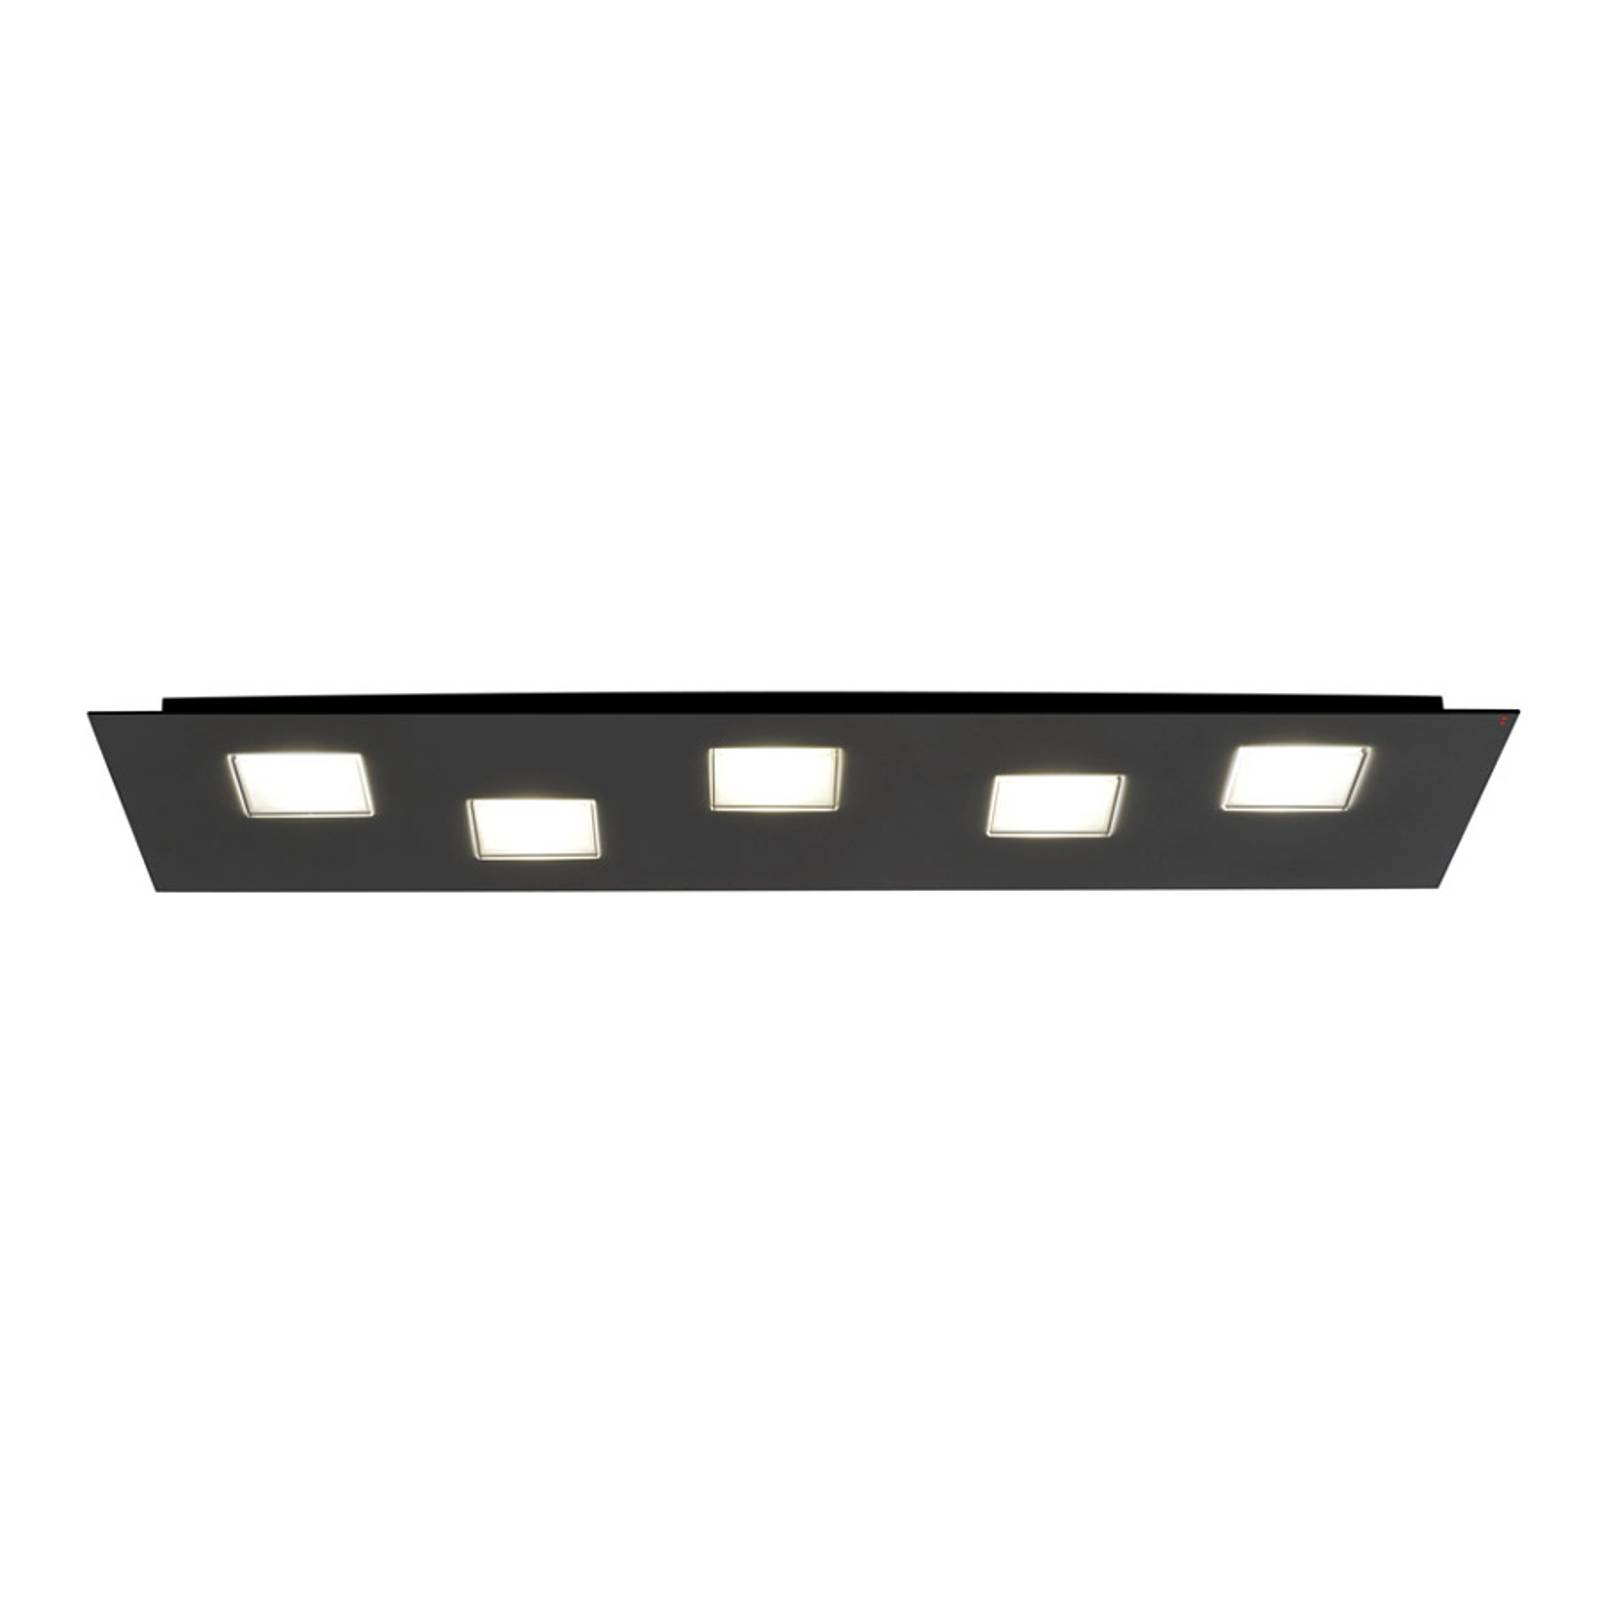 Plafonnier LED Quarter de 70 cm de long, noir